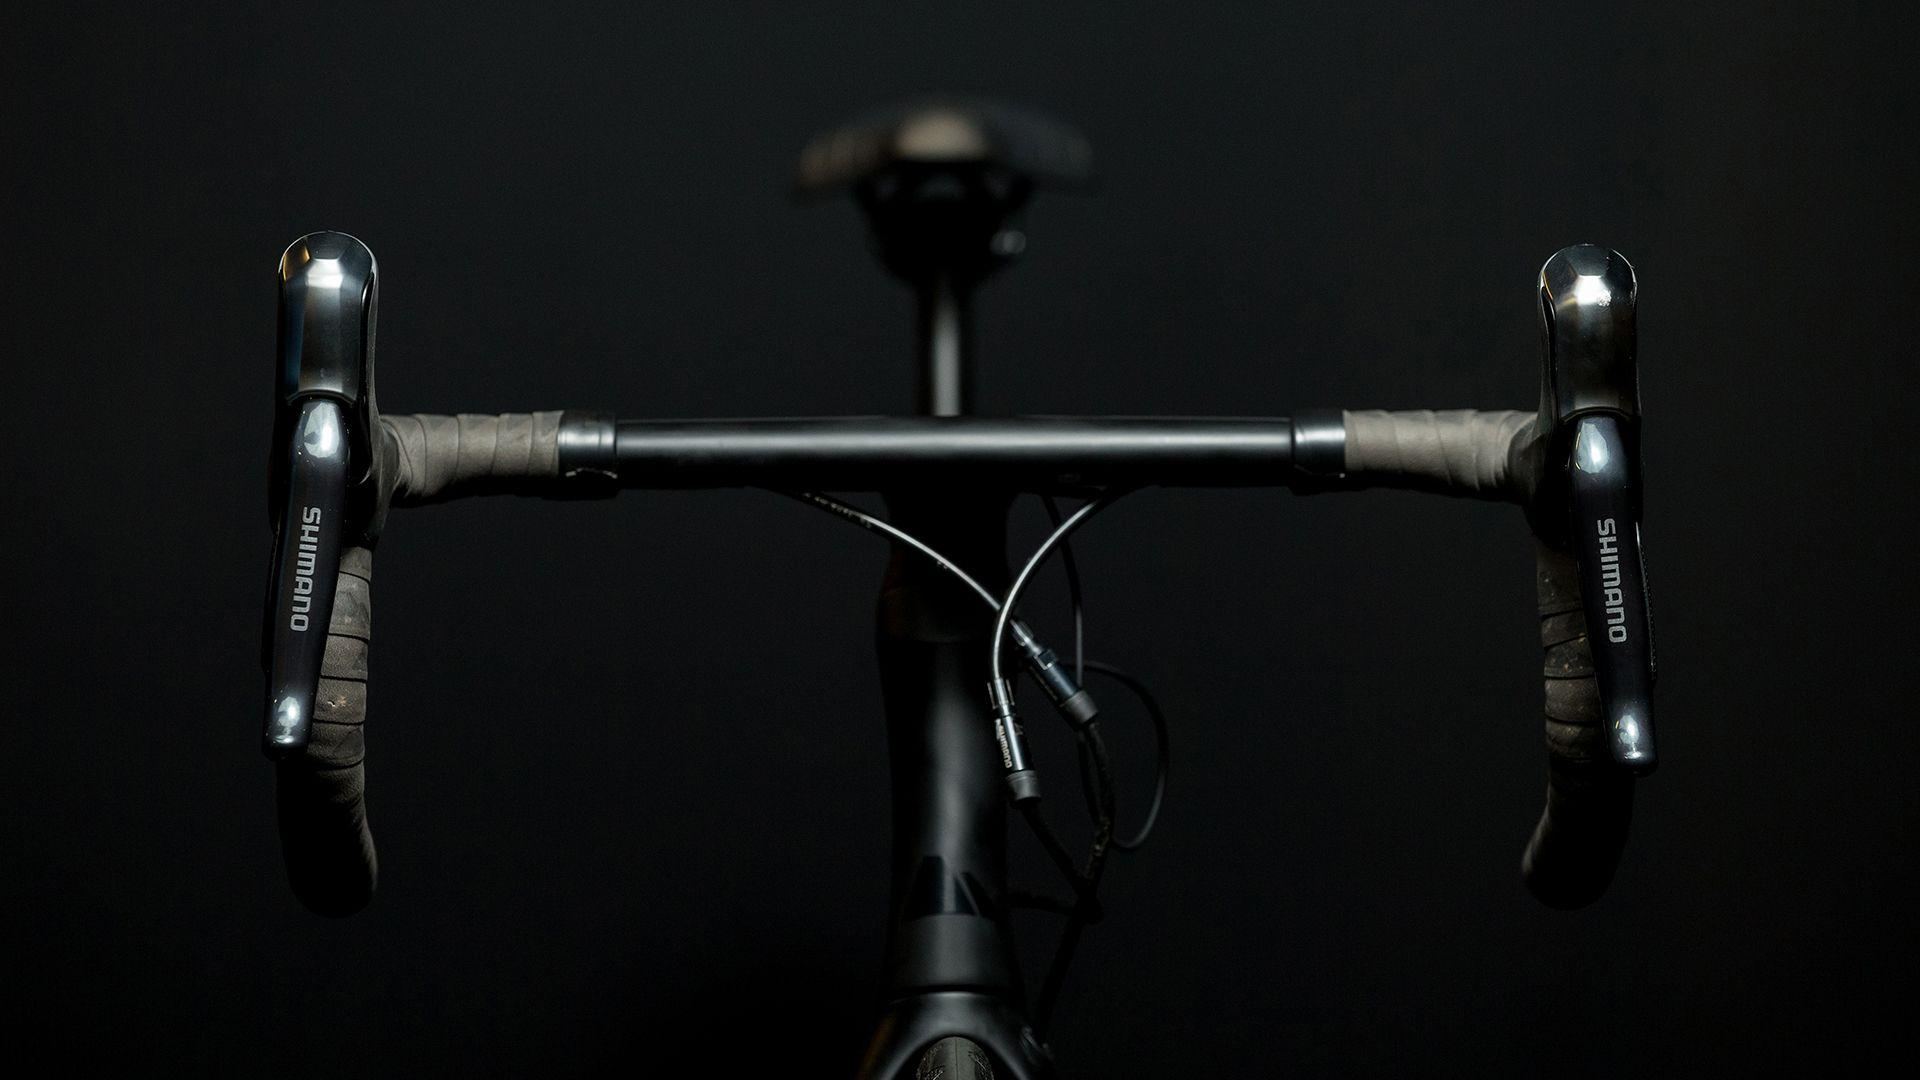 The Best Cycling Wallpaper 1920X1080 Images